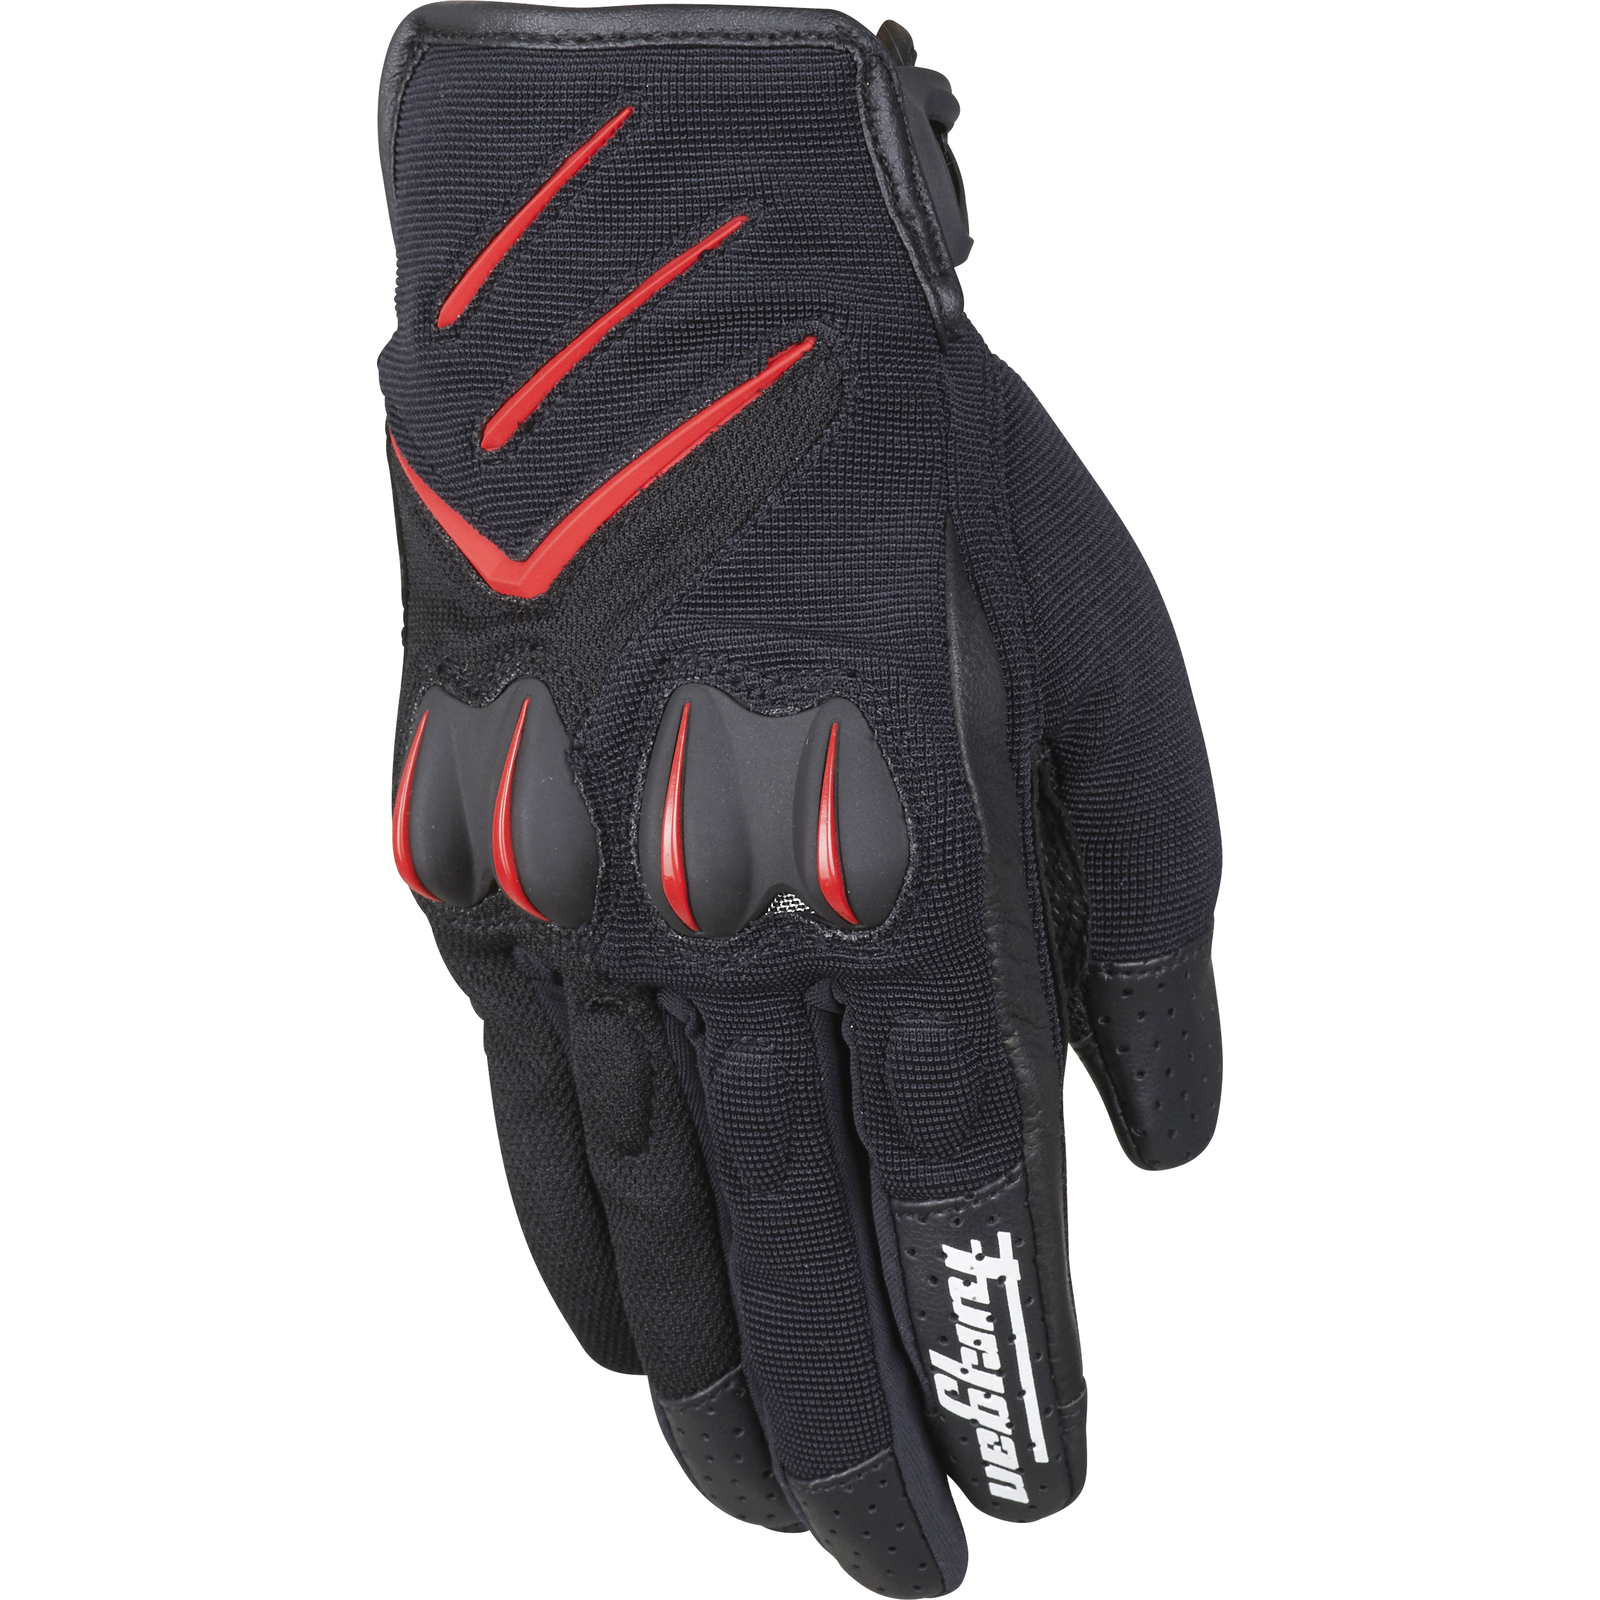 Motorcycle gloves ce approved - Furygan Delta Motorcycle Gloves Textile Mens Summer Vented Motorbike Ce Approved